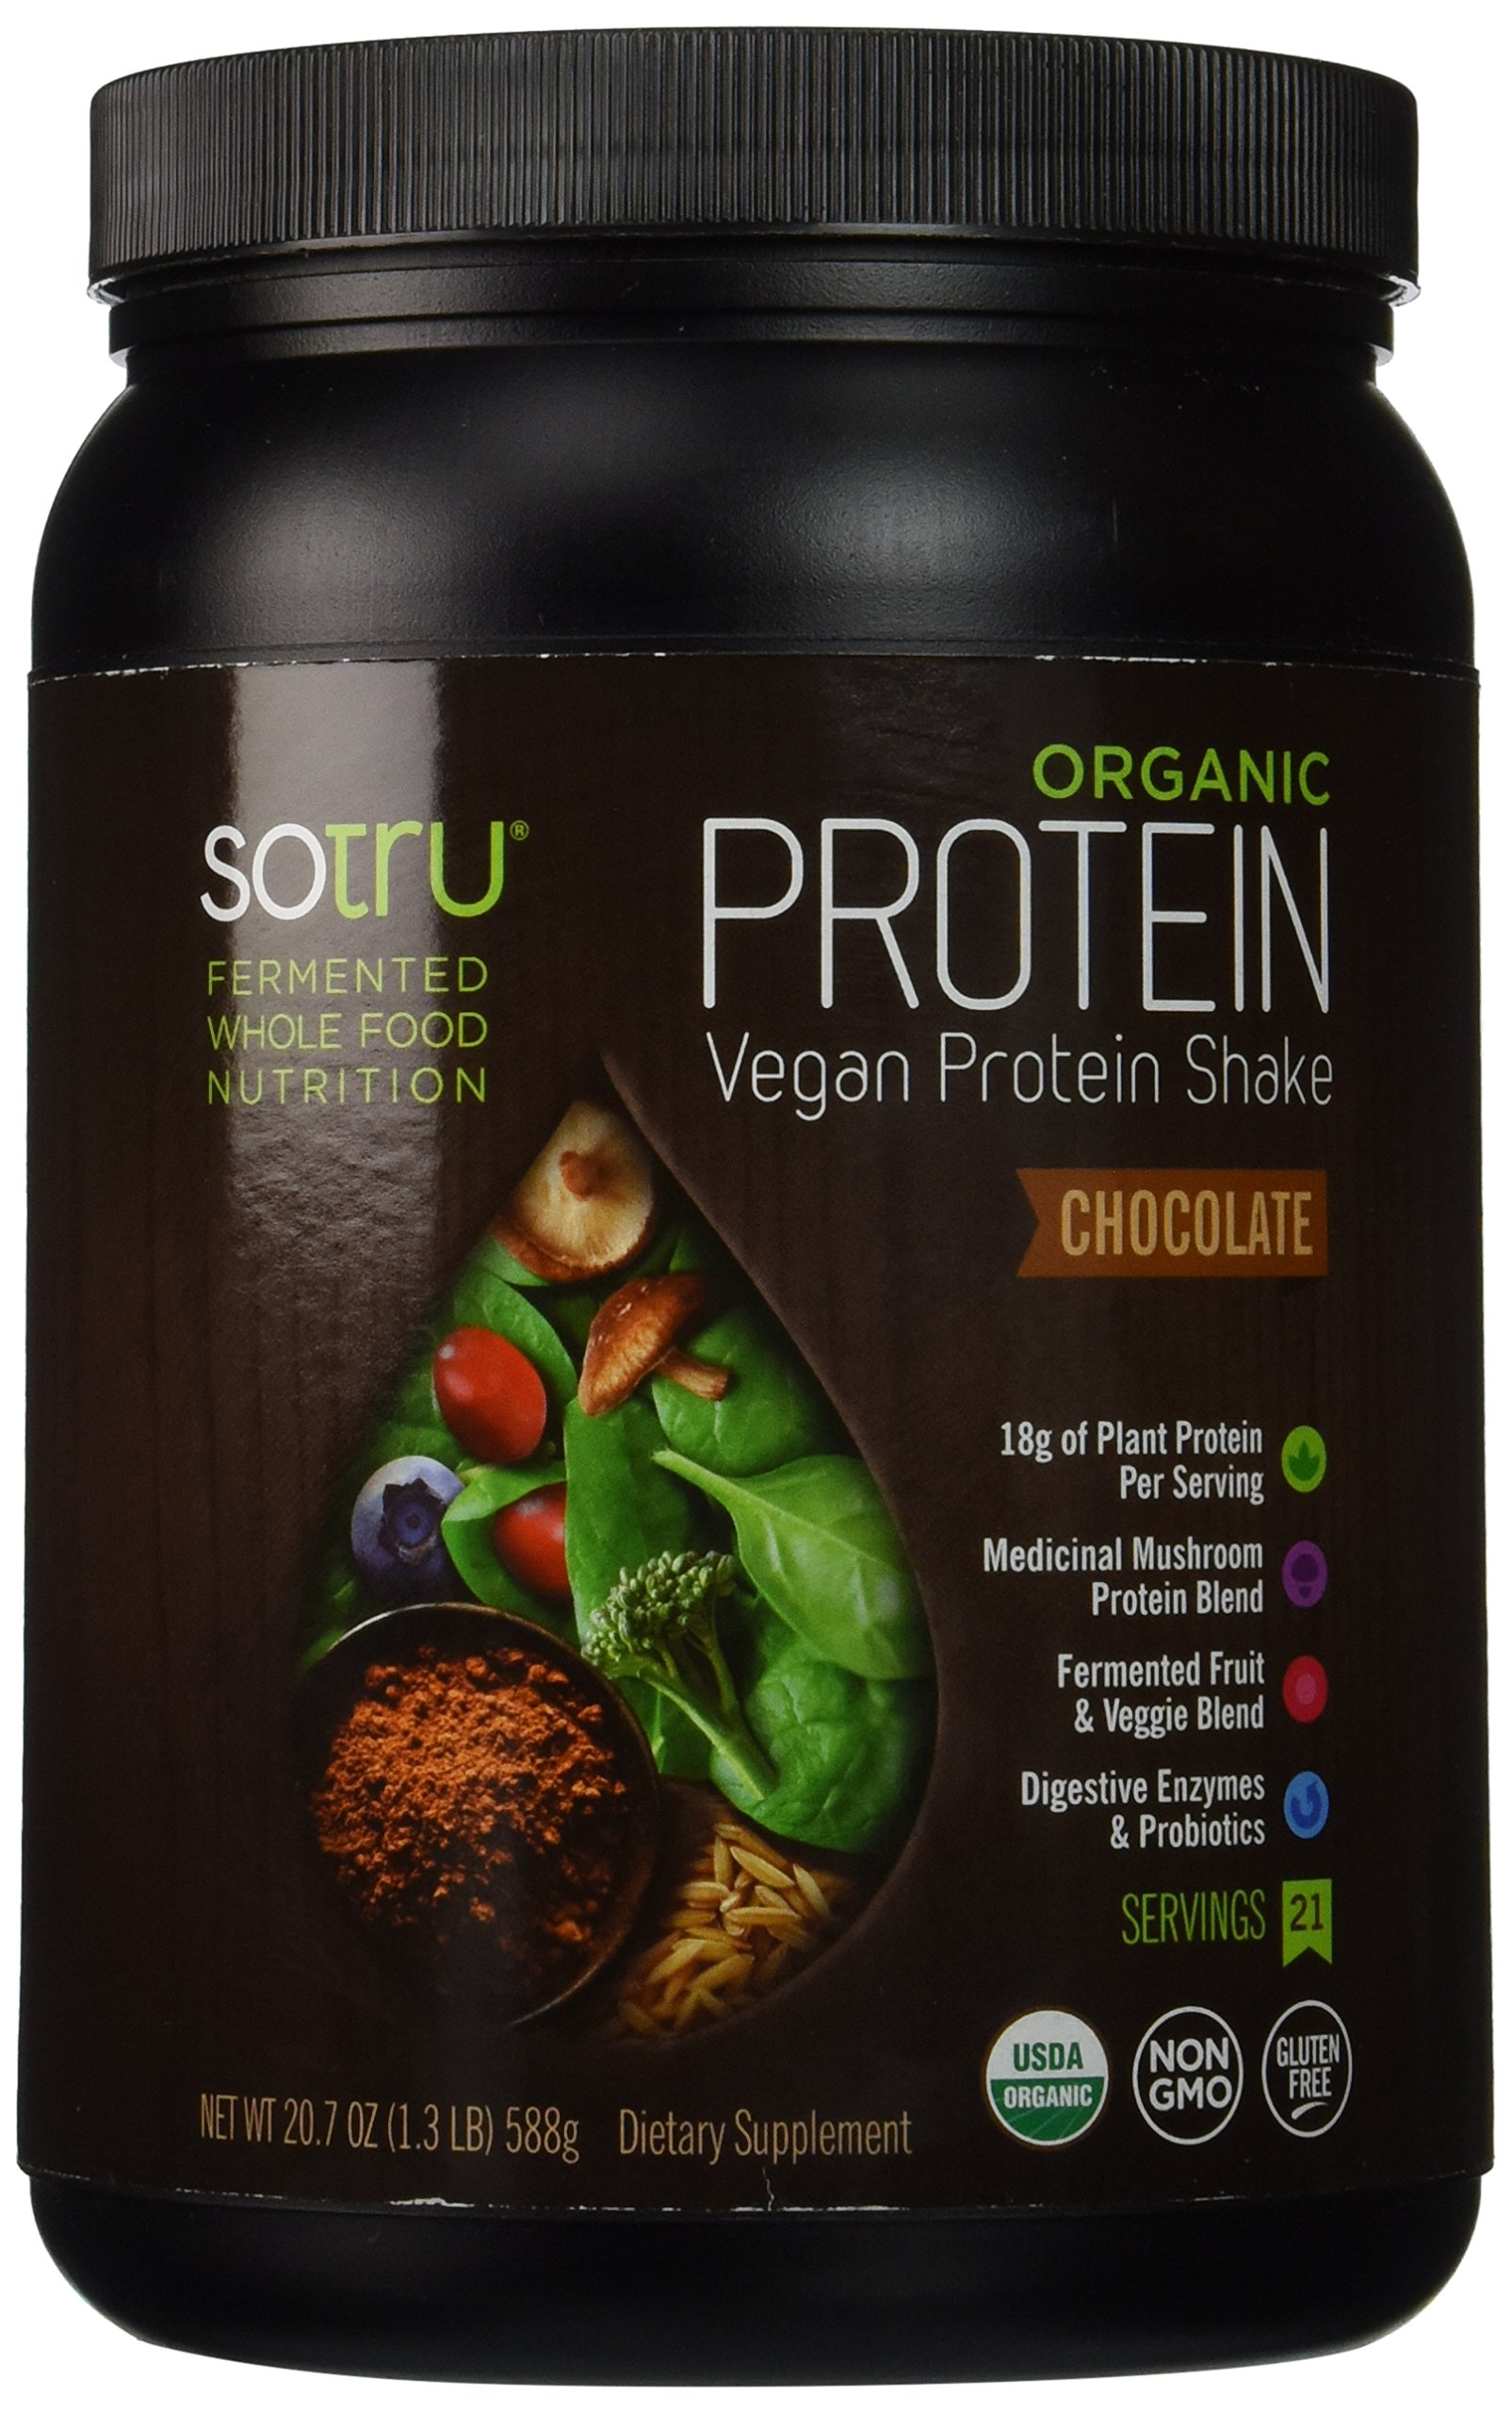 SoTru Vegan Protein Shake Chocolate - 588 Grams - Whole Food Plant-Based Powder with Green Superfoods, Enzymes & Probiotics - USDA Certified Organic, Non-GMO, Gluten-Free - 21 Servings